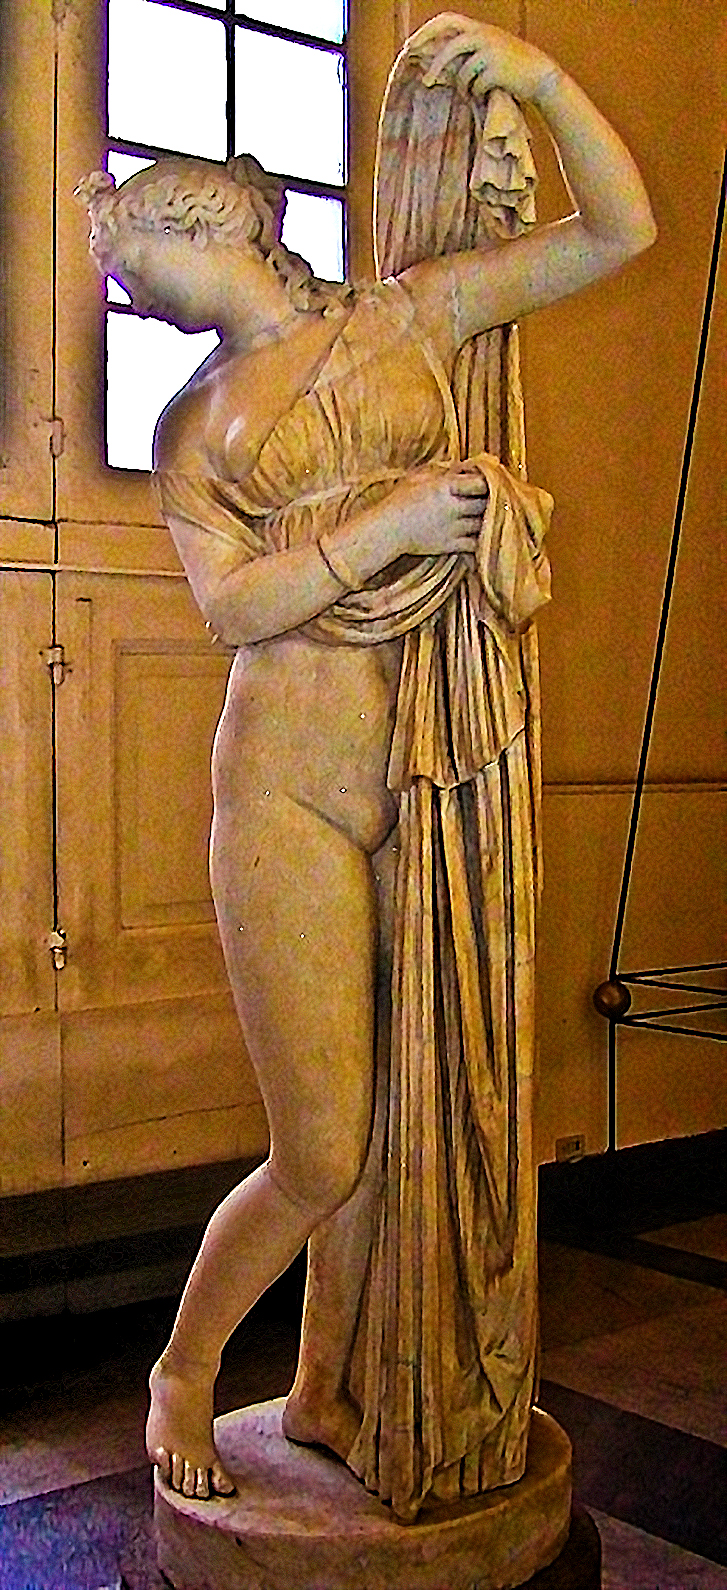 Venus Callypige, Napoli, Greco-Roman sculpture of an Hellenistic Greek sculpture, 8